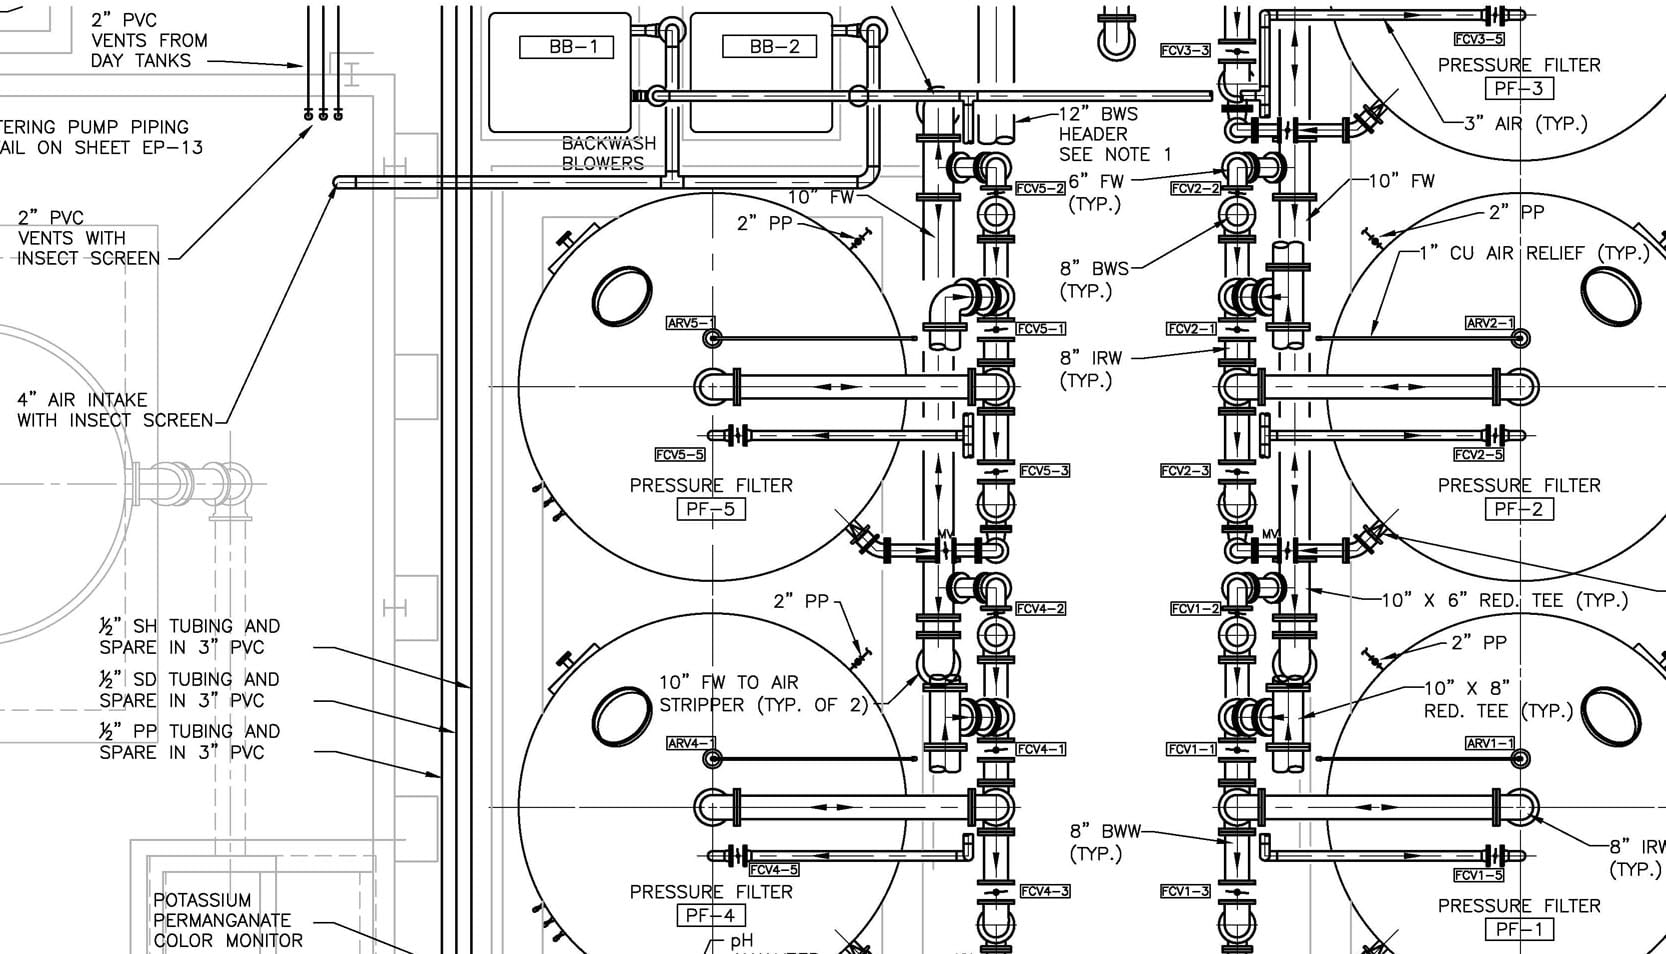 develop and review equipment and piping layout drawings by tubero piping diagram drawing autocad plumbing drawing fiverr